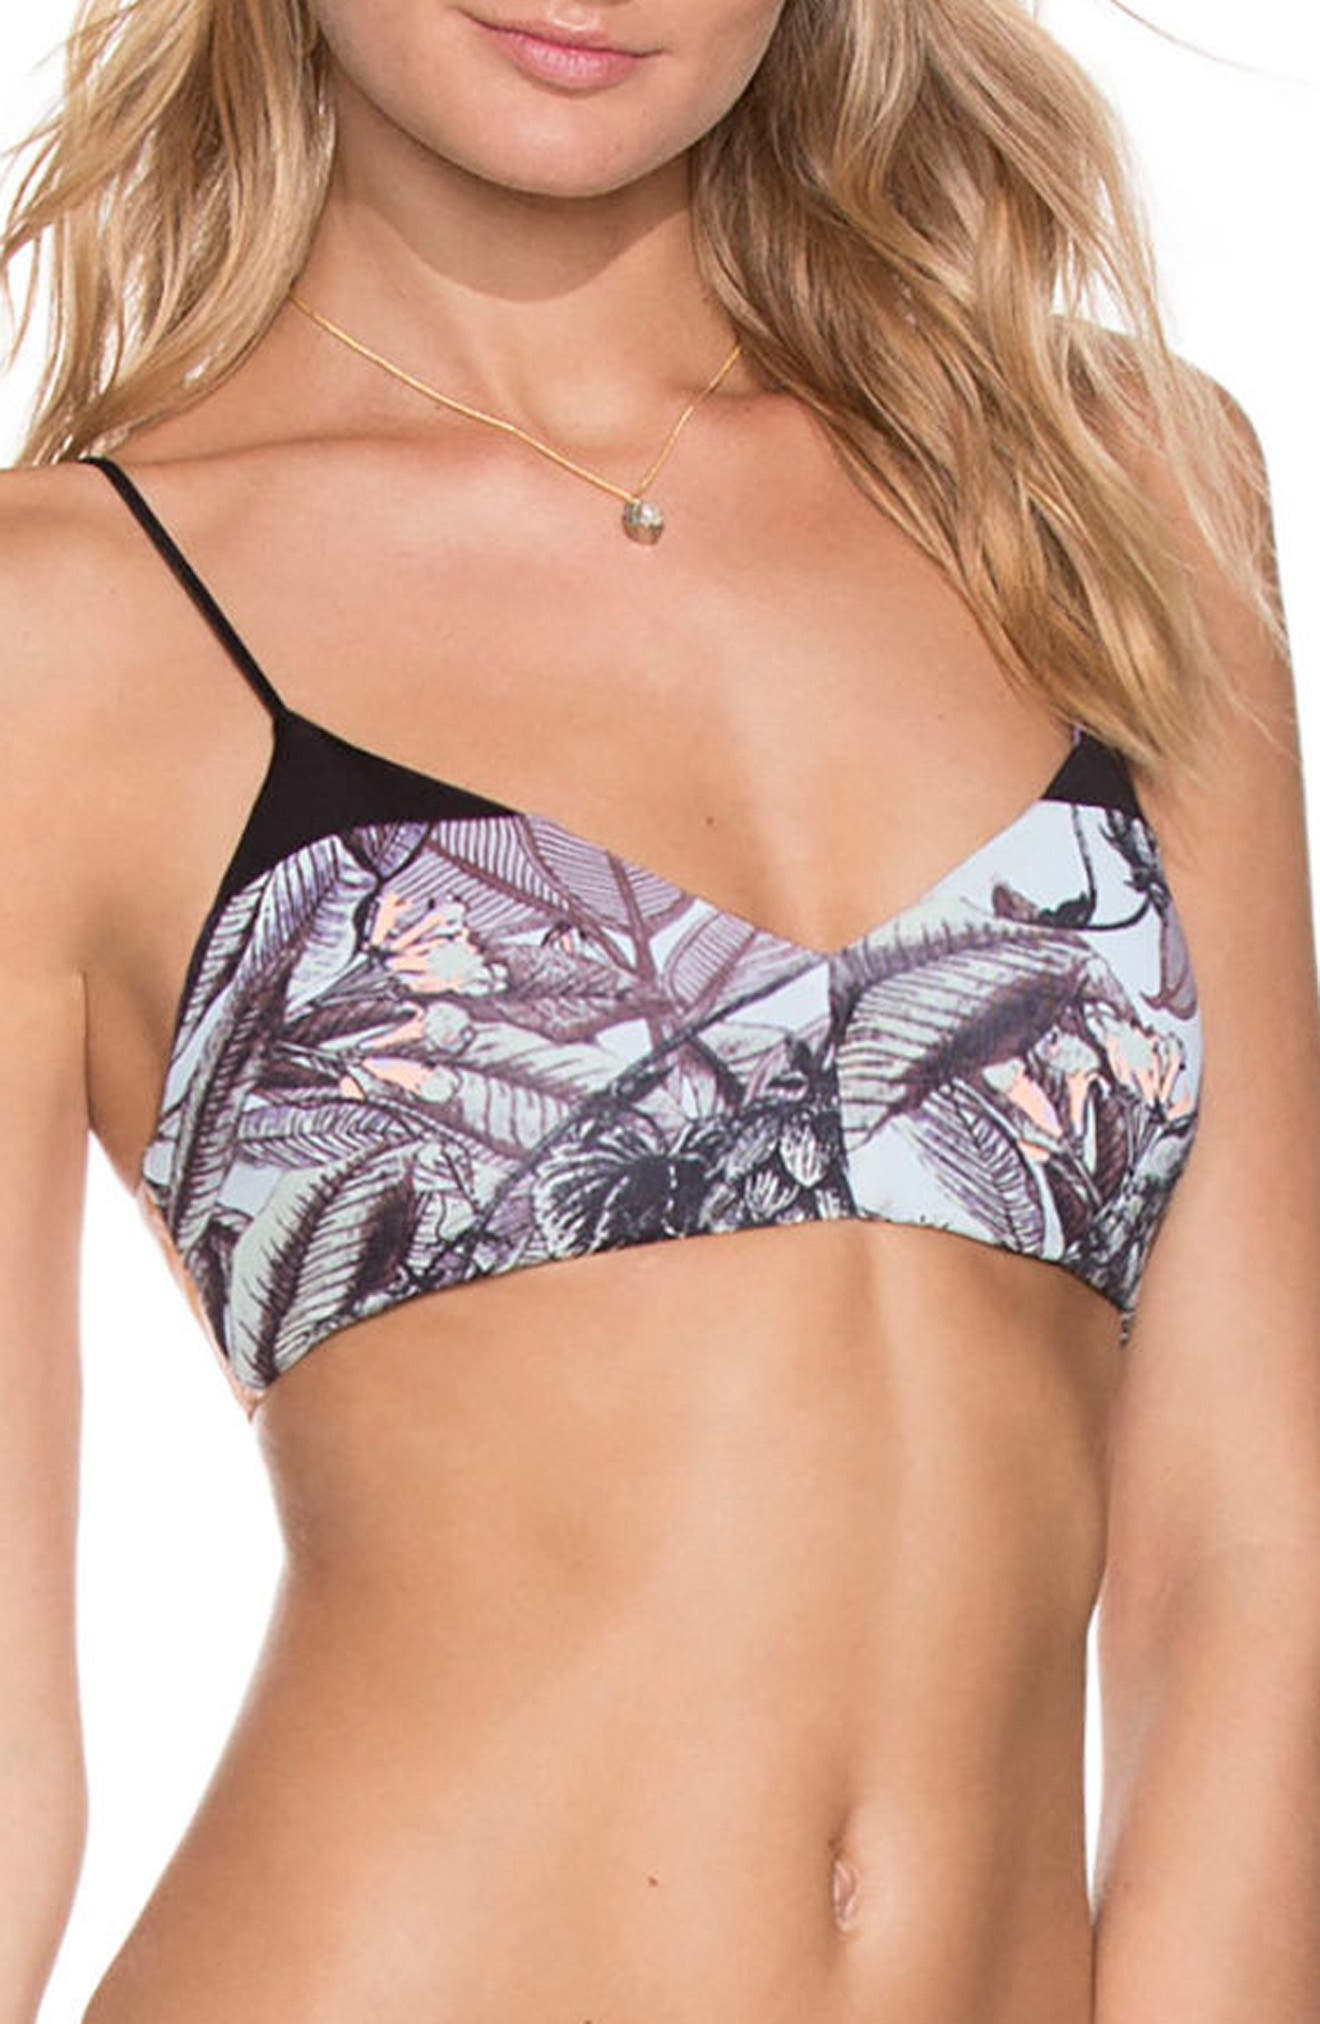 Afterlife Island Reversible Bikini Top,                             Main thumbnail 1, color,                             Black Multi